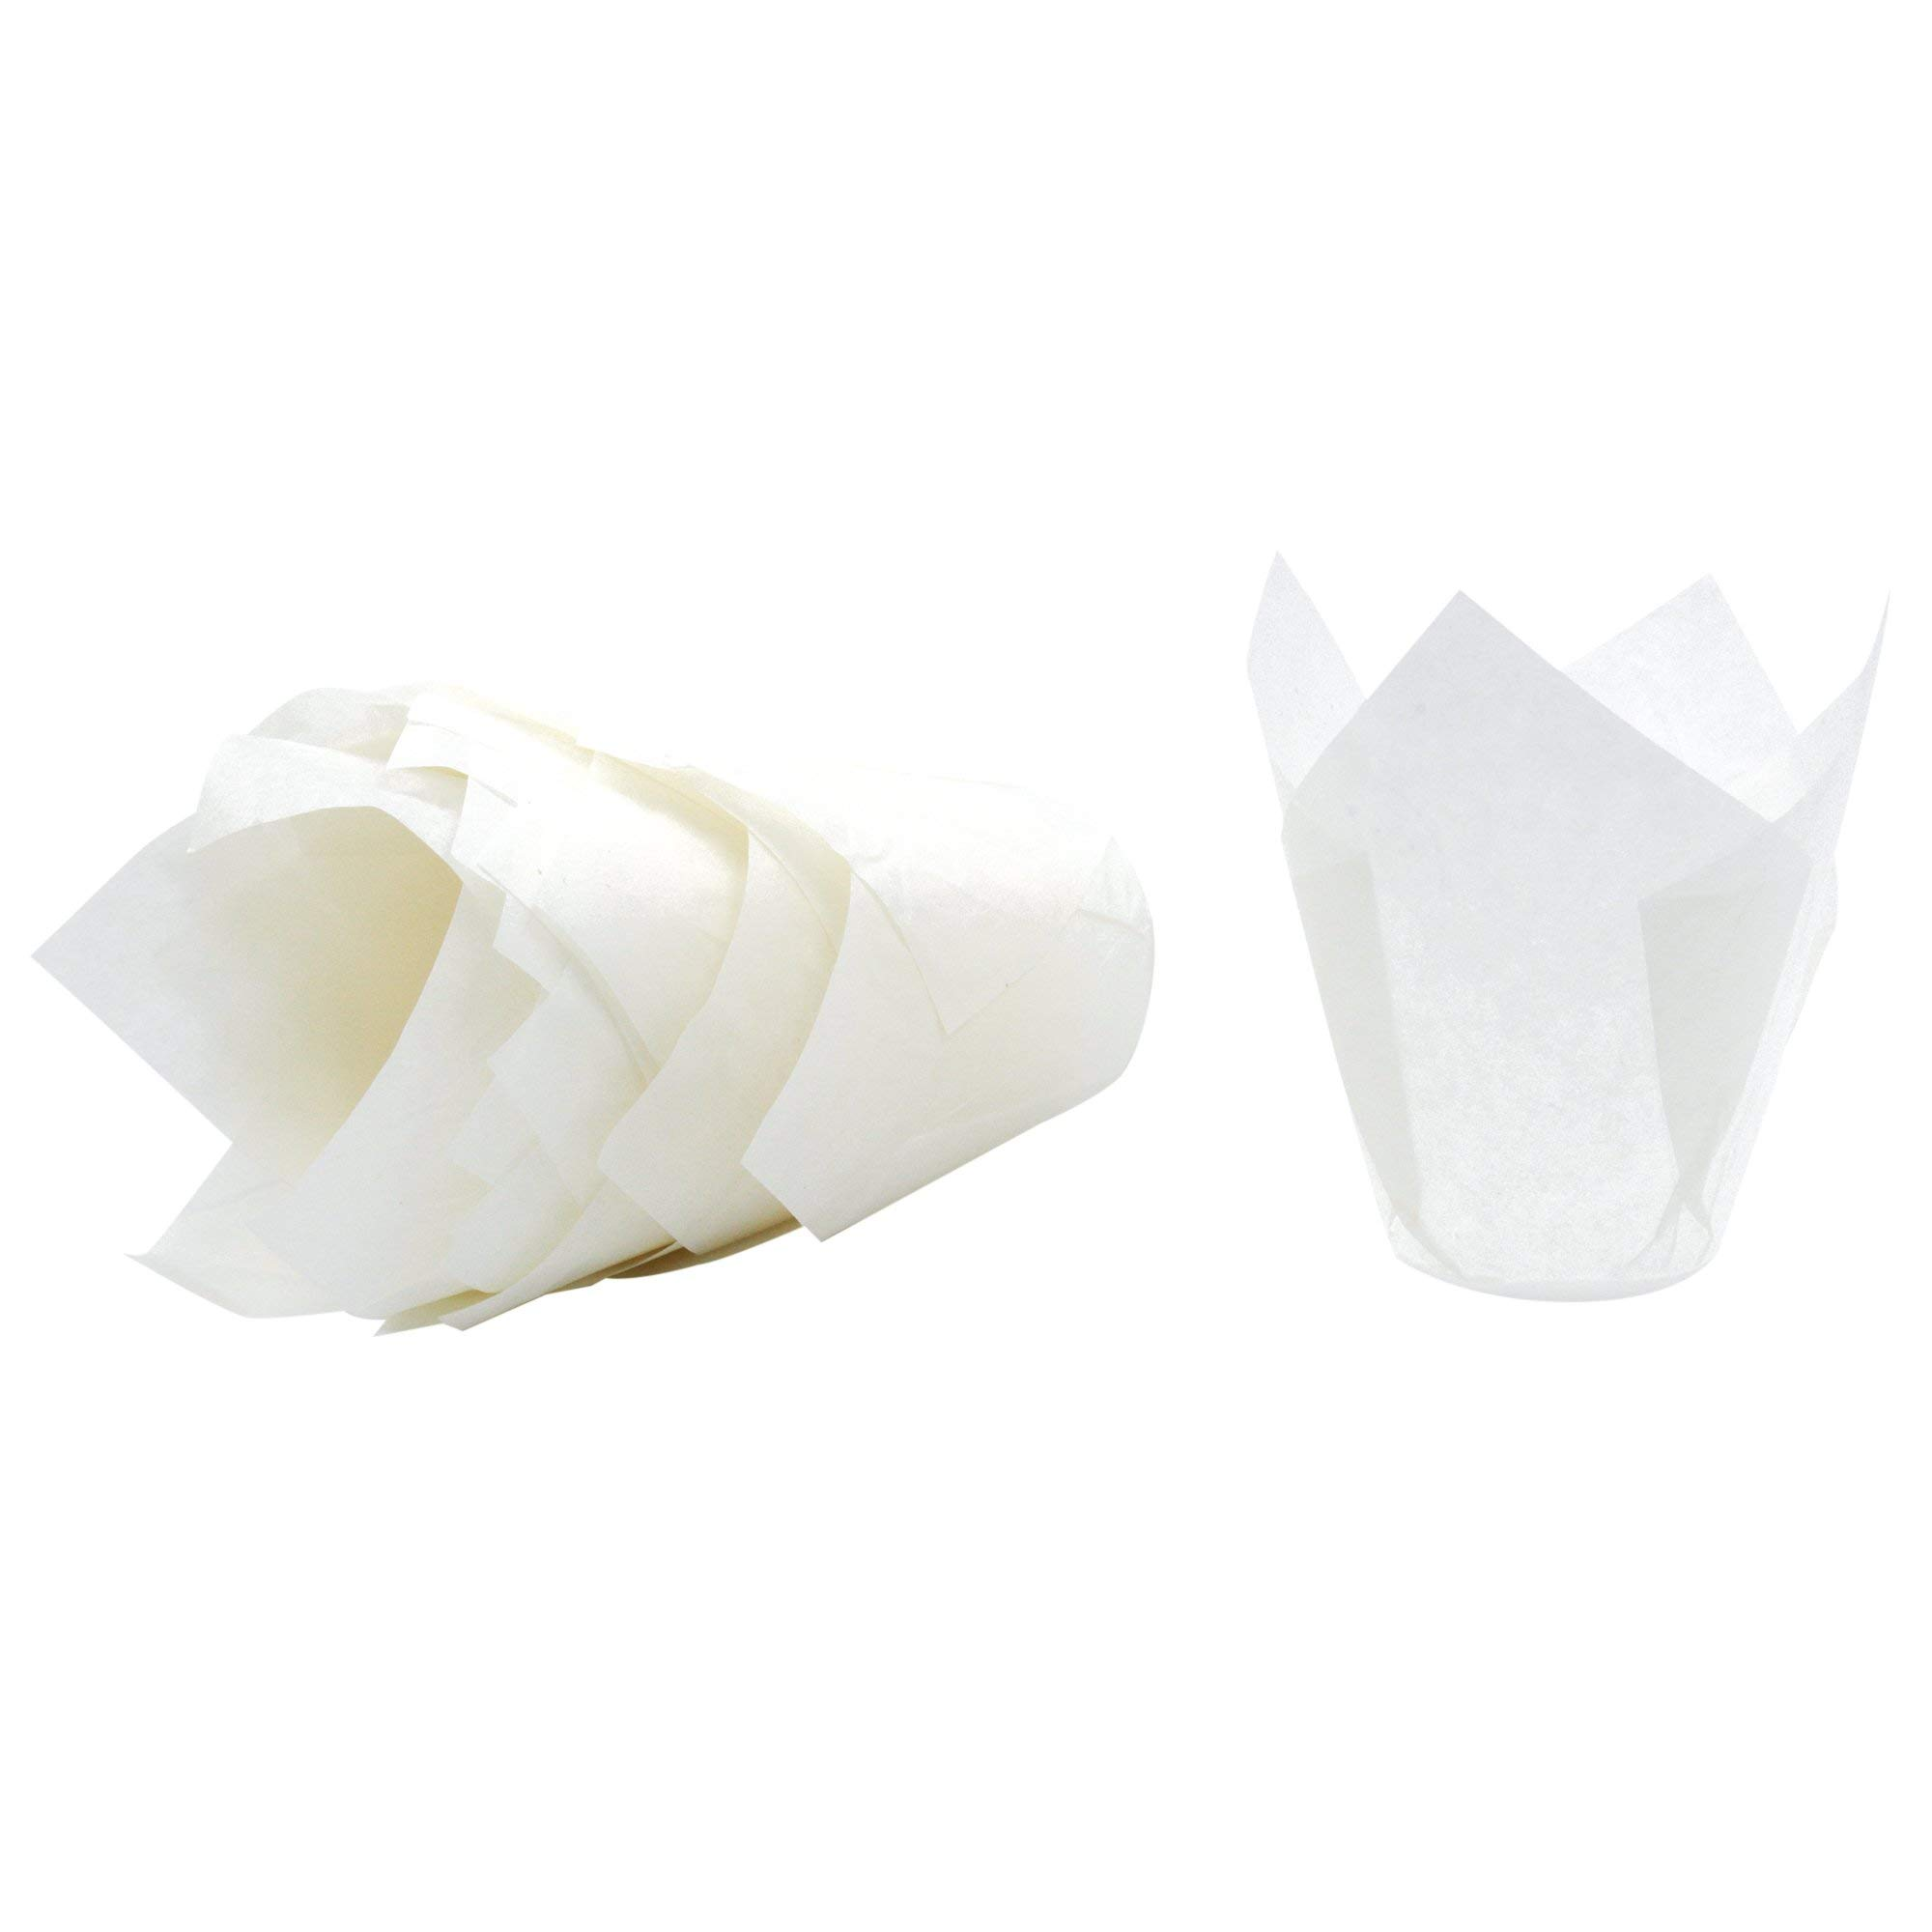 White Tulip Baking Cups, Mini Size, Pack of 250 by Ecobake (Image #3)